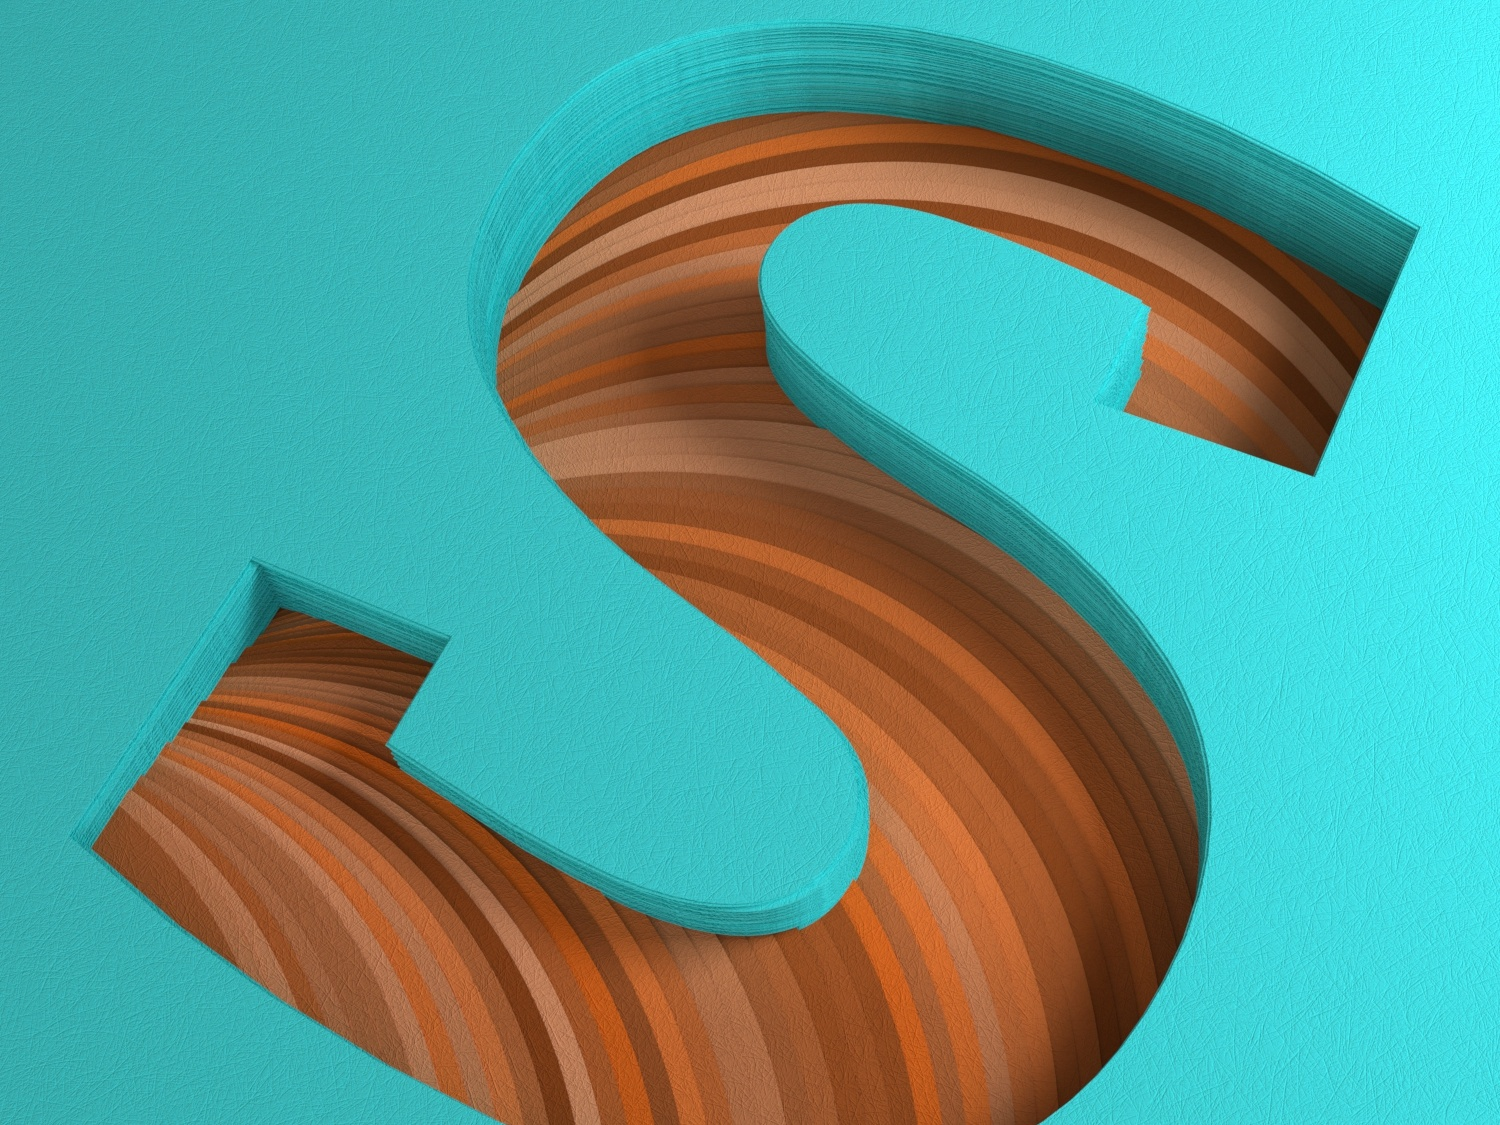 Paper S for 36 Days of Type 36daysoftype type daily render c4d everyday daily soy tico costa rica mrs. constancy cgi 3d